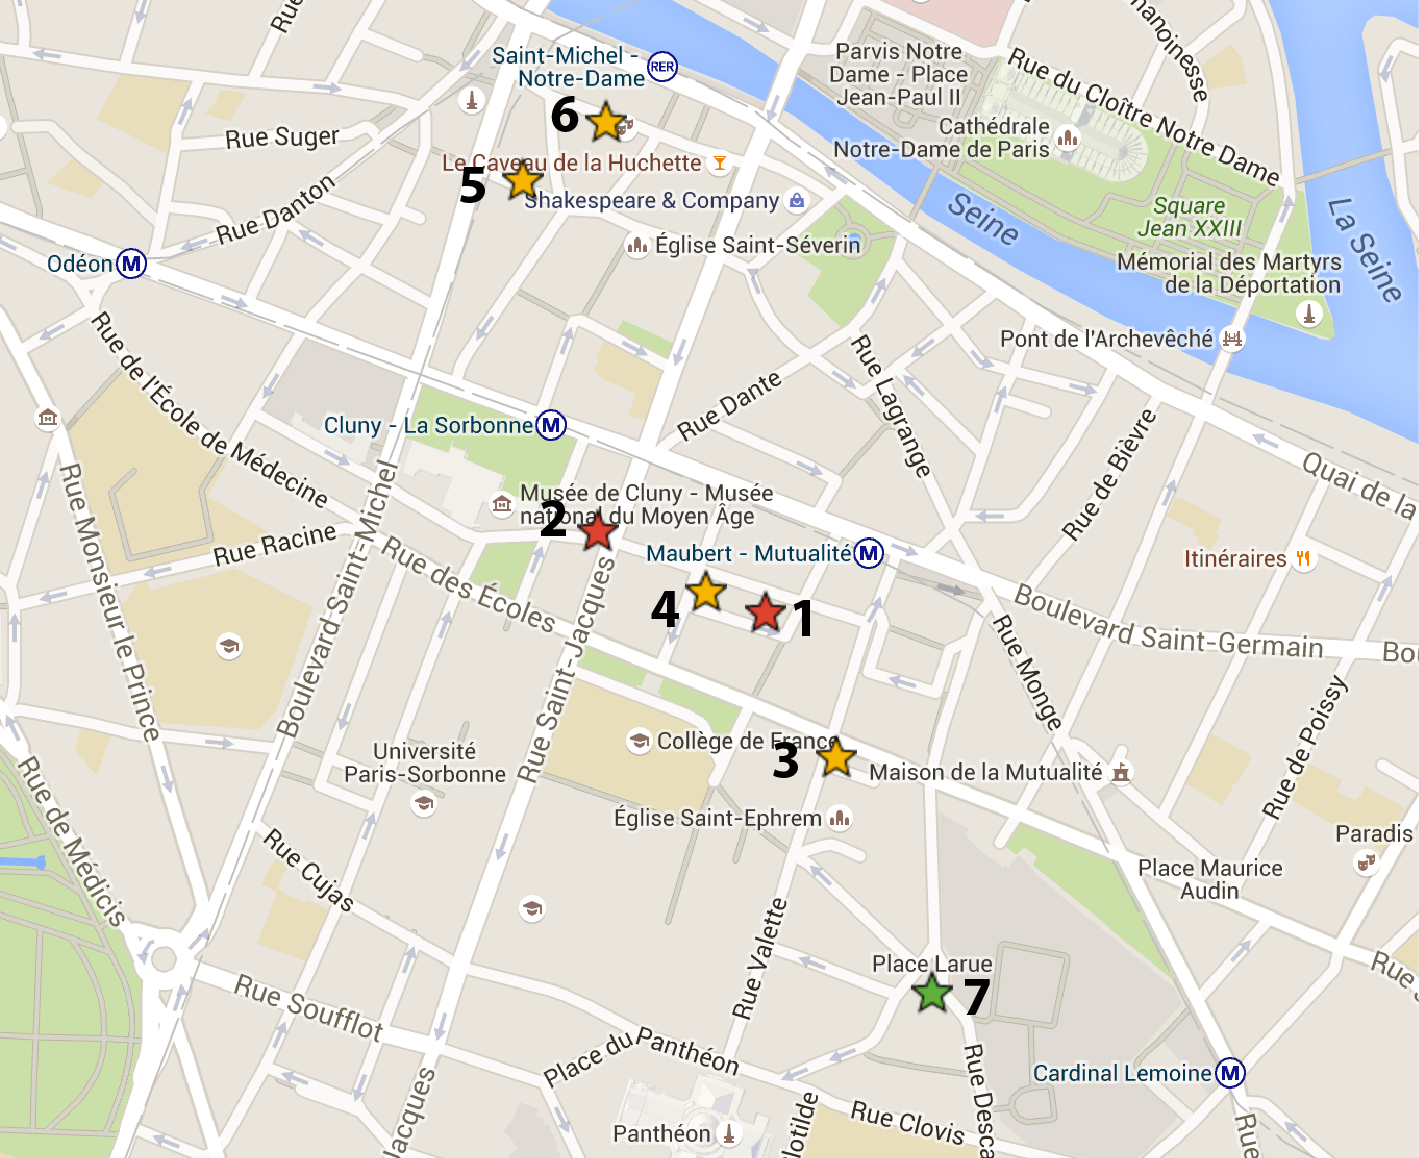 Hotels close to RER station Saint-Michel - Notre-Dame